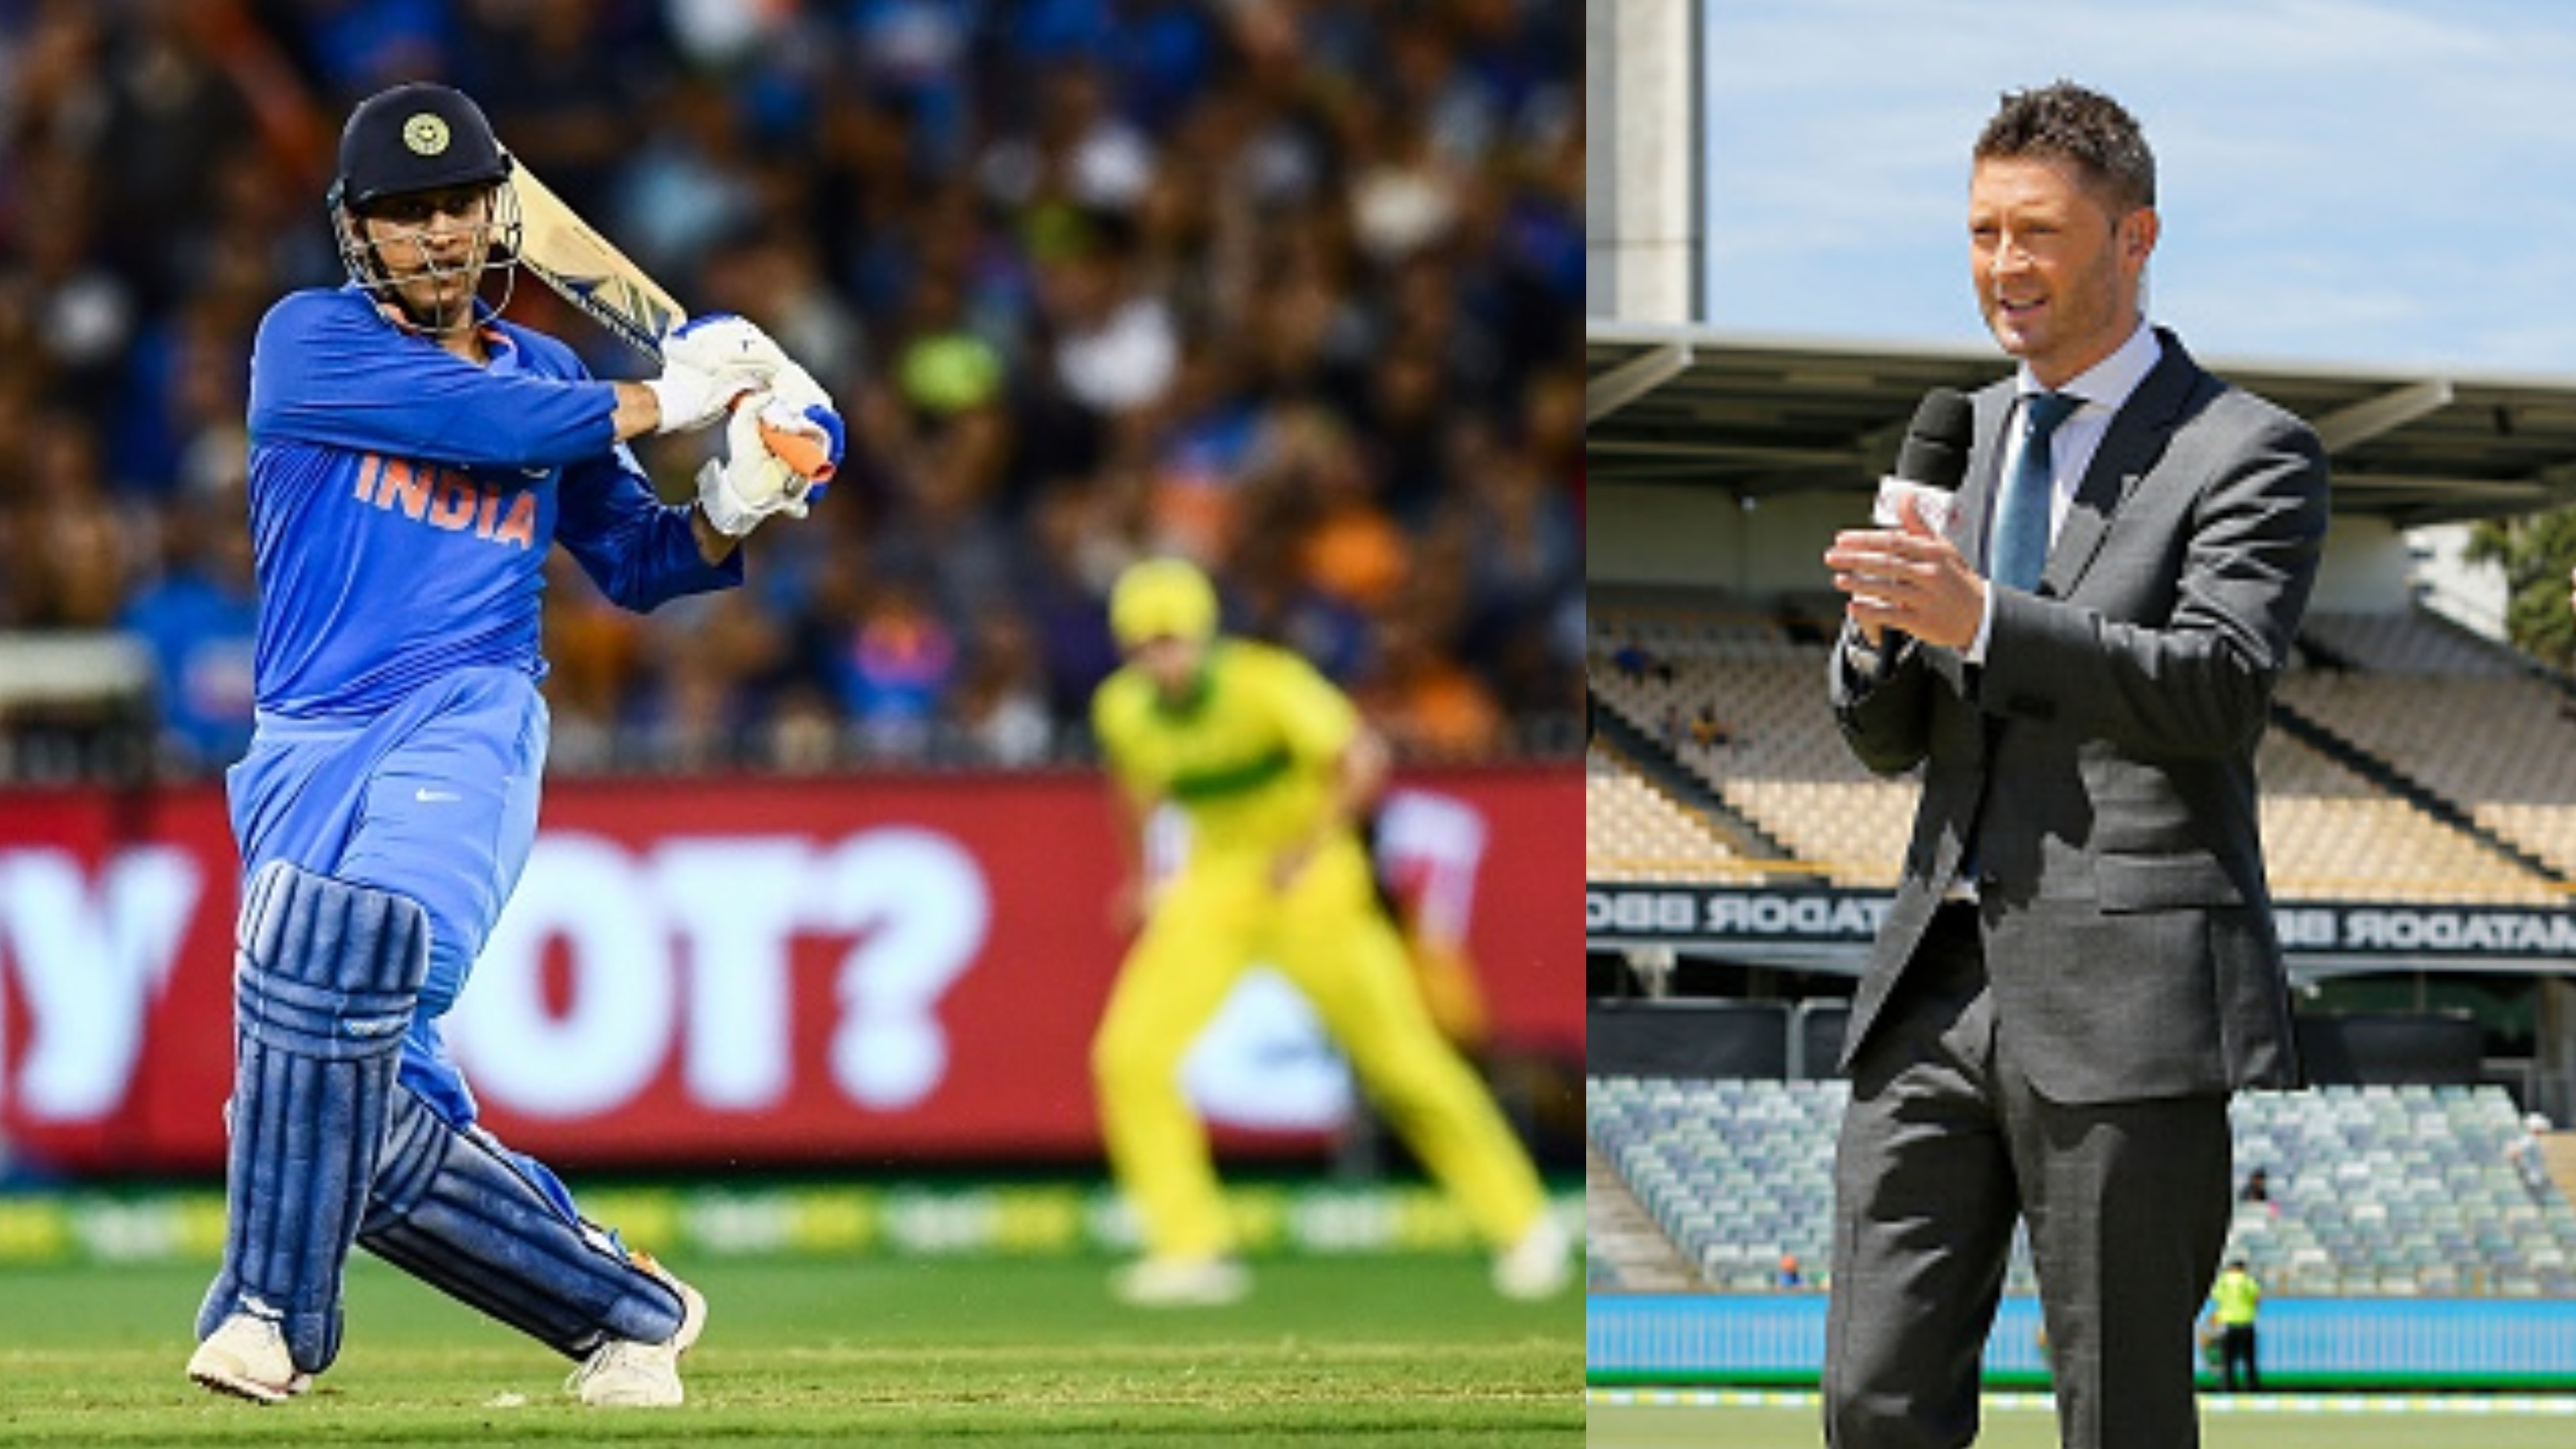 AUS v IND 2018-19: MS Dhoni has gone from a Lamborghini to an Aston Martin, says Michael Clarke